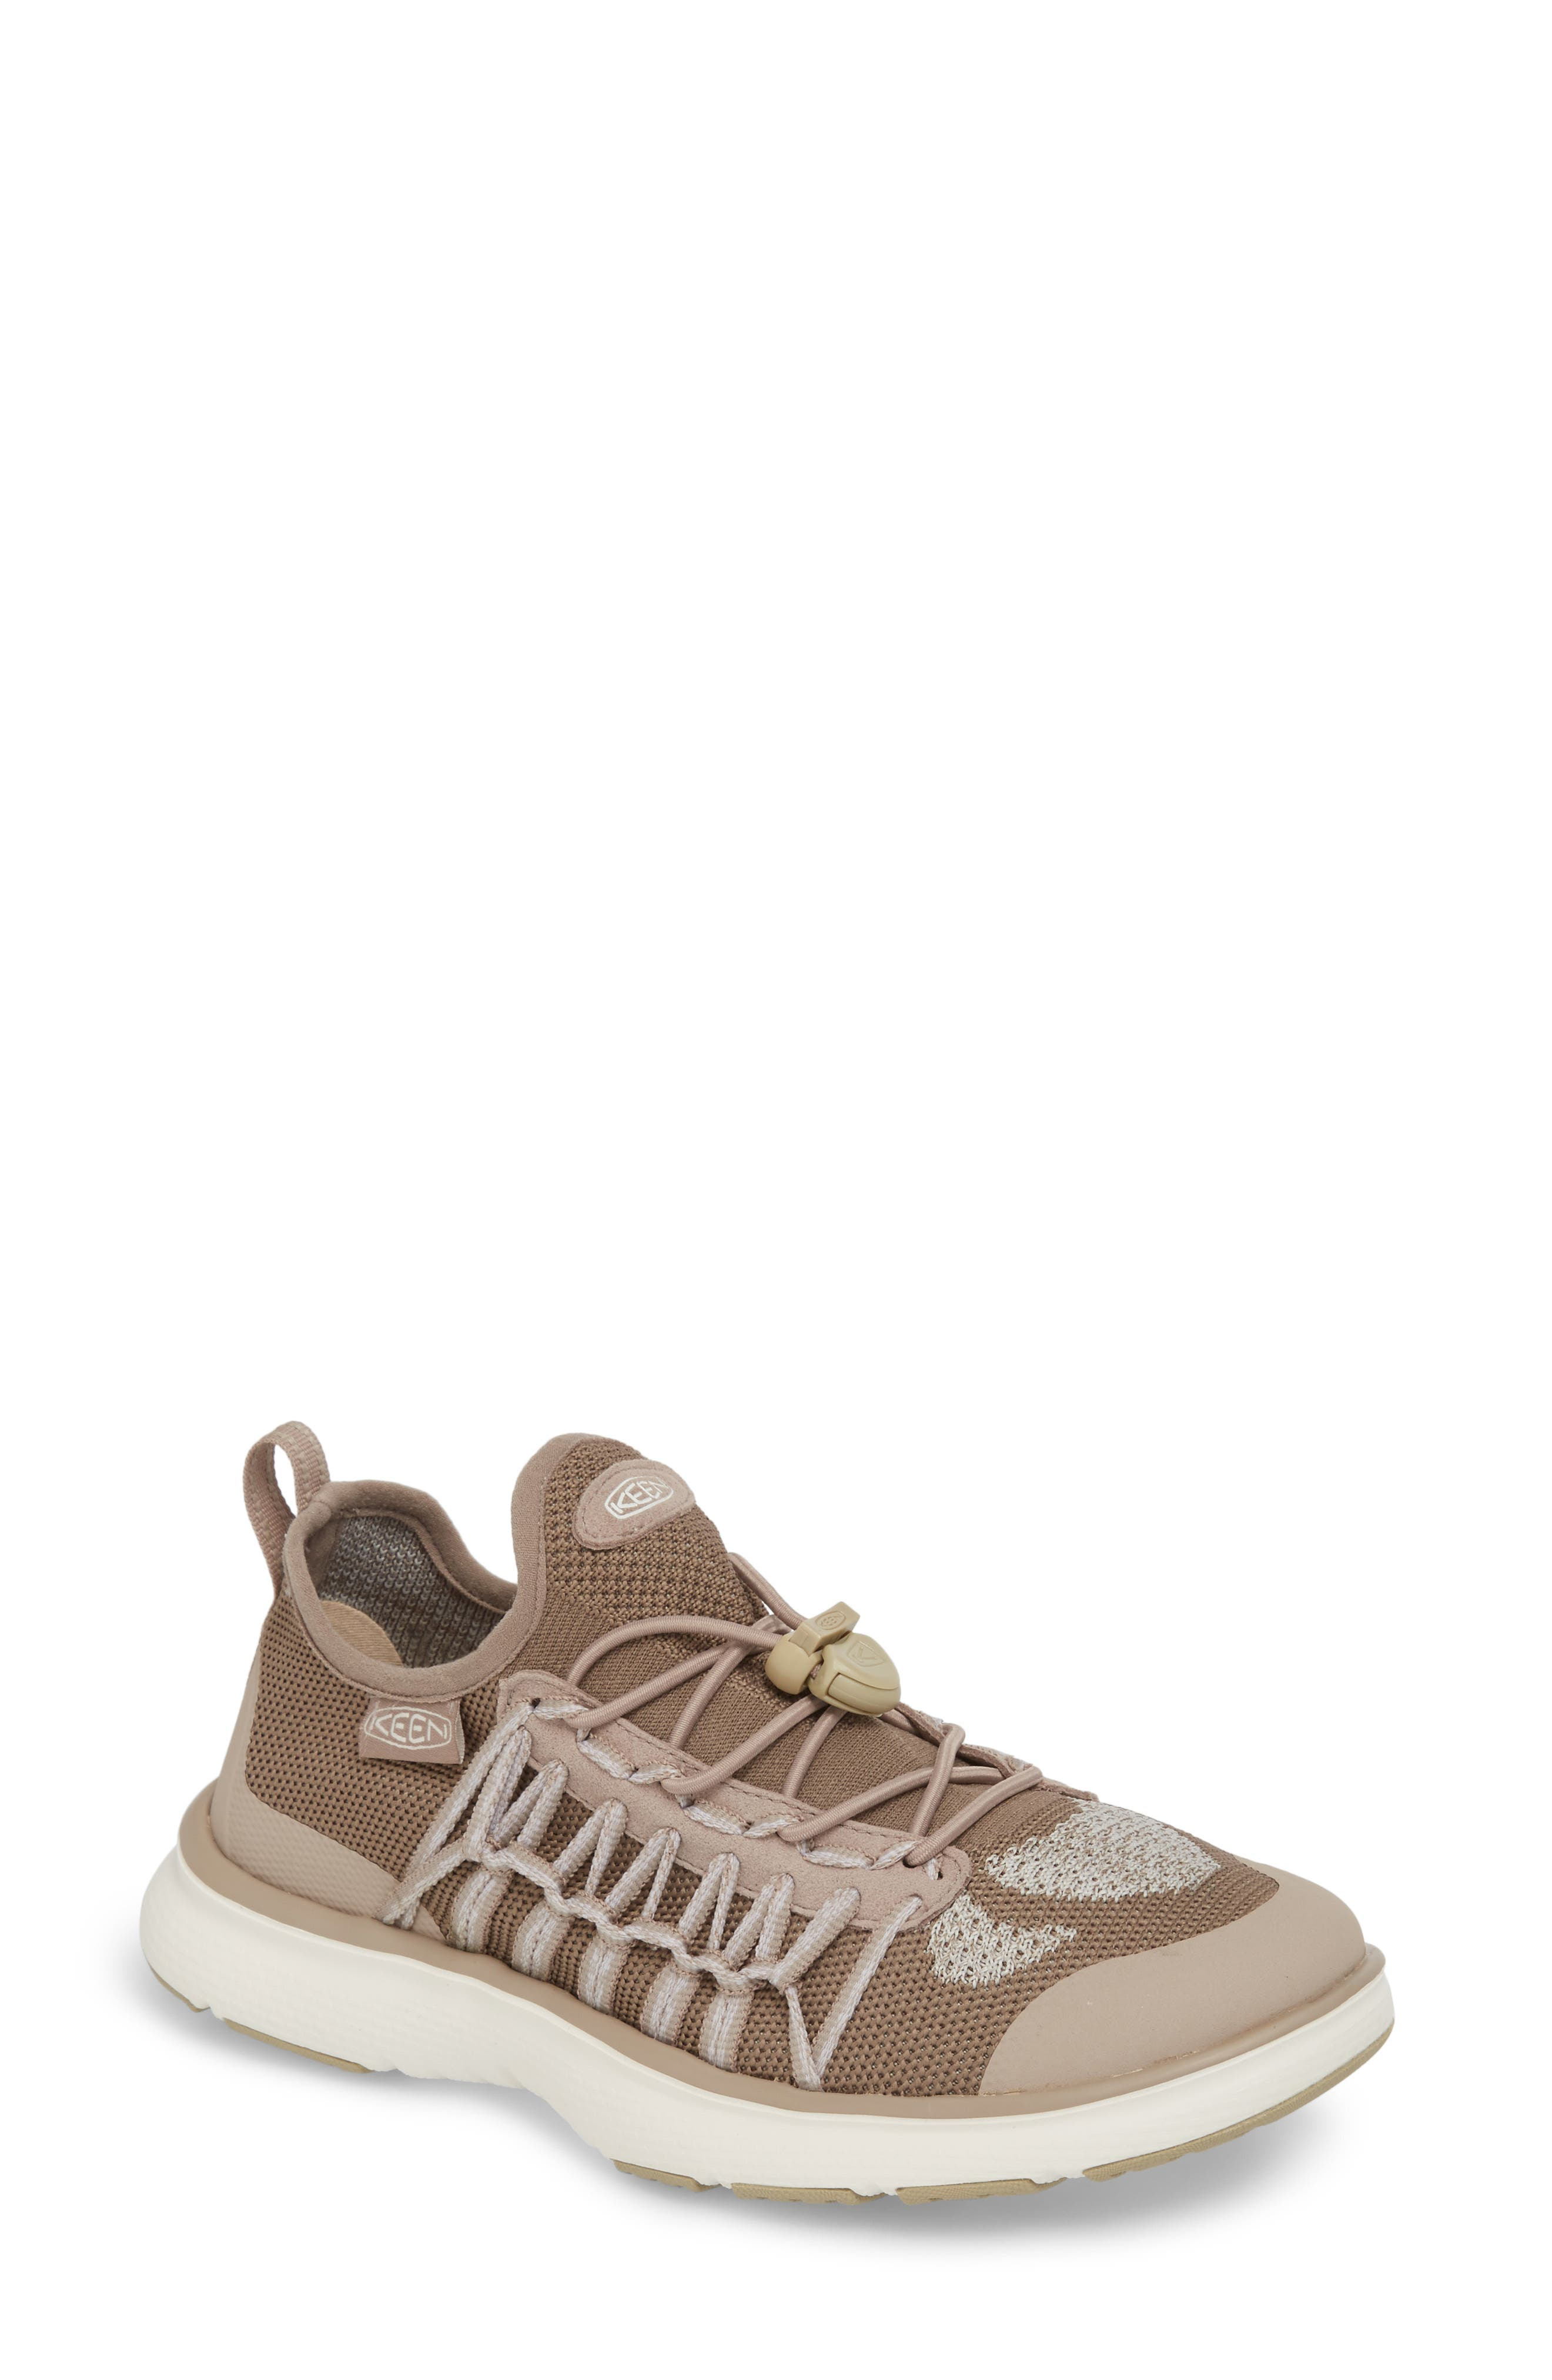 Uneek Exo Water Sneaker,                         Main,                         color, Plaza Taupe